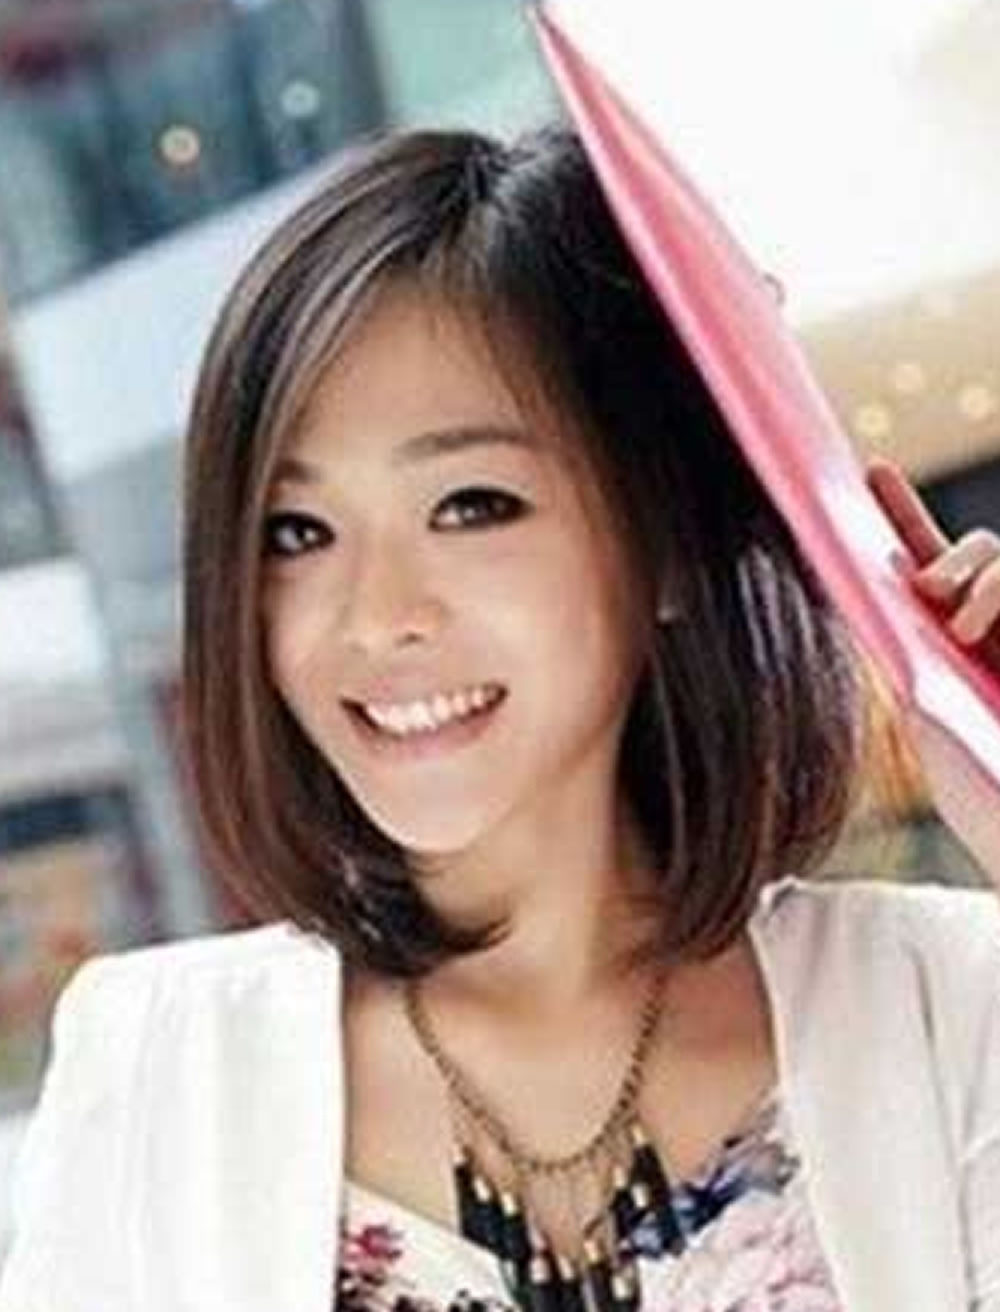 50 Glorious Short Hairstyles For Asian Women For Summer Days 2018 pertaining to New Hairstyle 2018 Female Asian